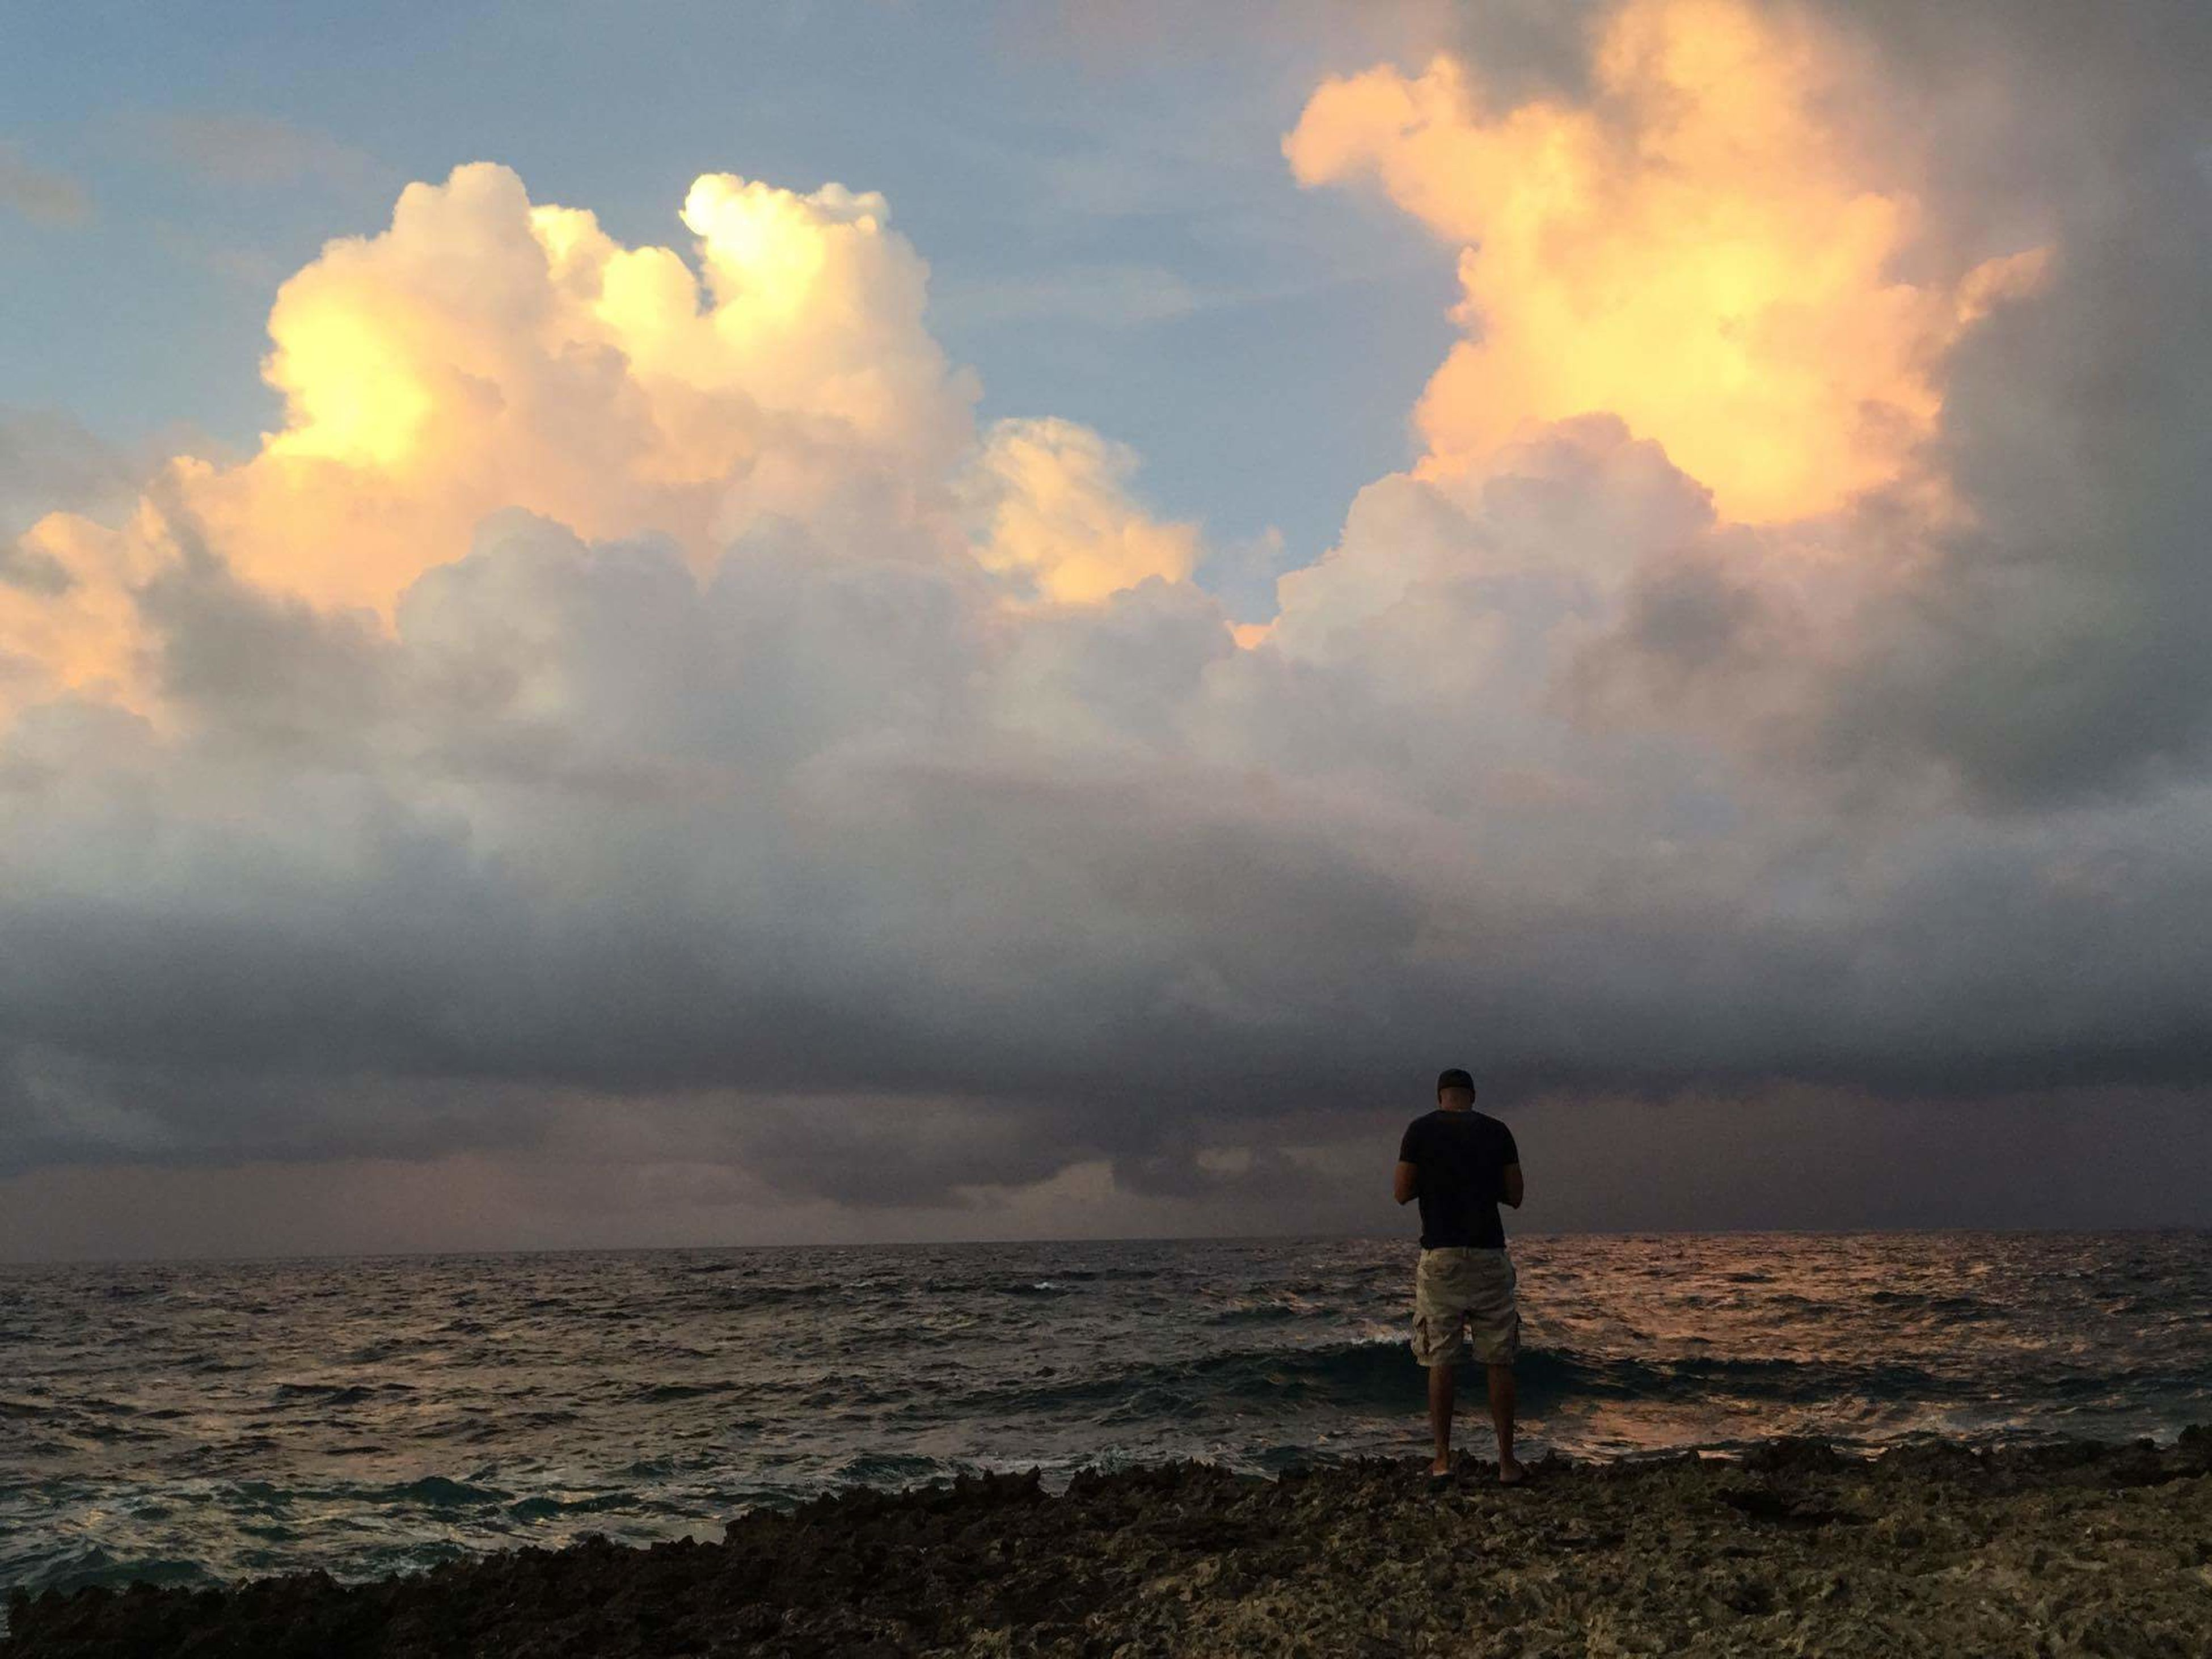 sea, horizon over water, tranquil scene, water, tranquility, scenics, silhouette, sky, standing, rear view, beauty in nature, men, idyllic, cloud - sky, nature, majestic, getting away from it all, escapism, solitude, remote, seascape, dramatic sky, calm, cloud, non-urban scene, shore, ocean, outdoors